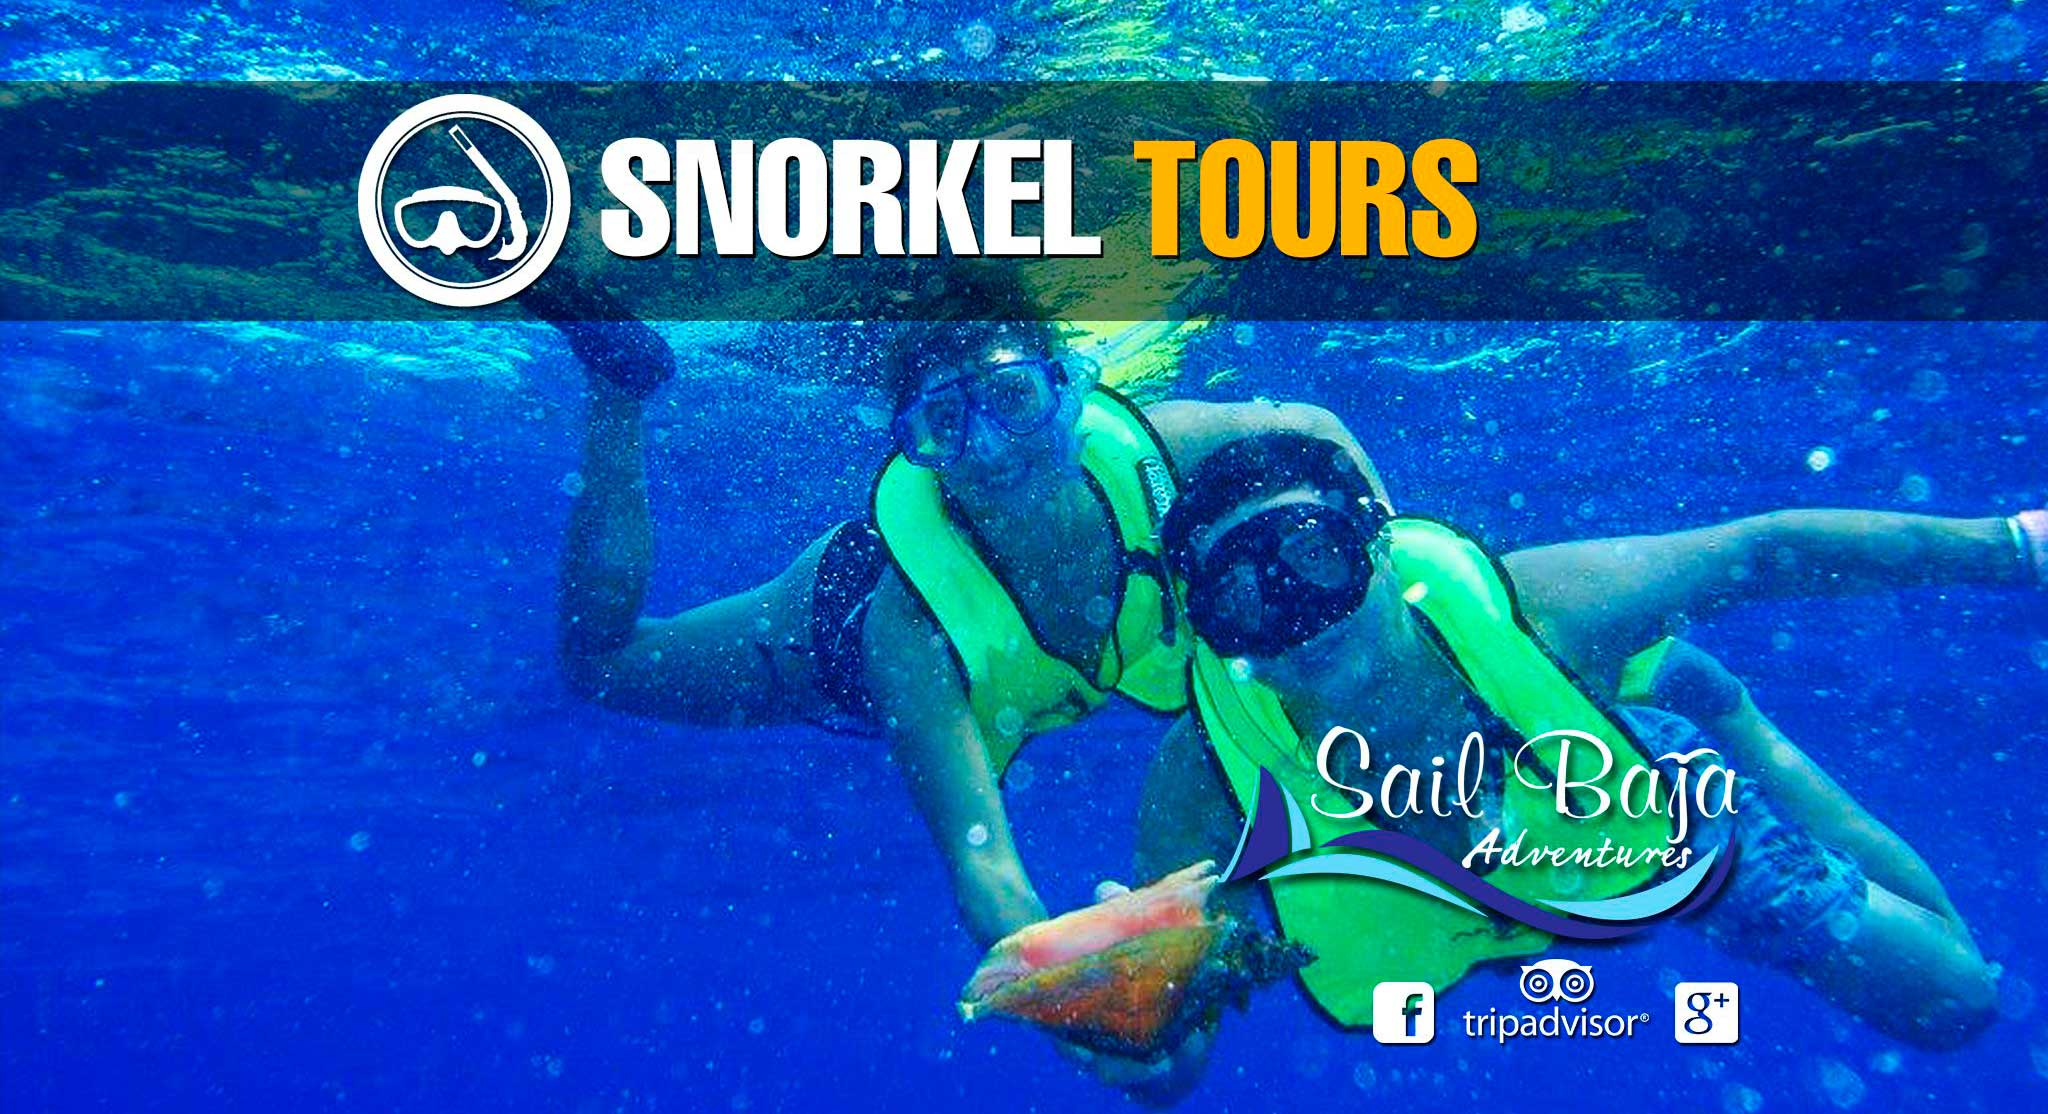 Snorkeling Tours in Cabo San Lucas, Los Cabos, Mexico